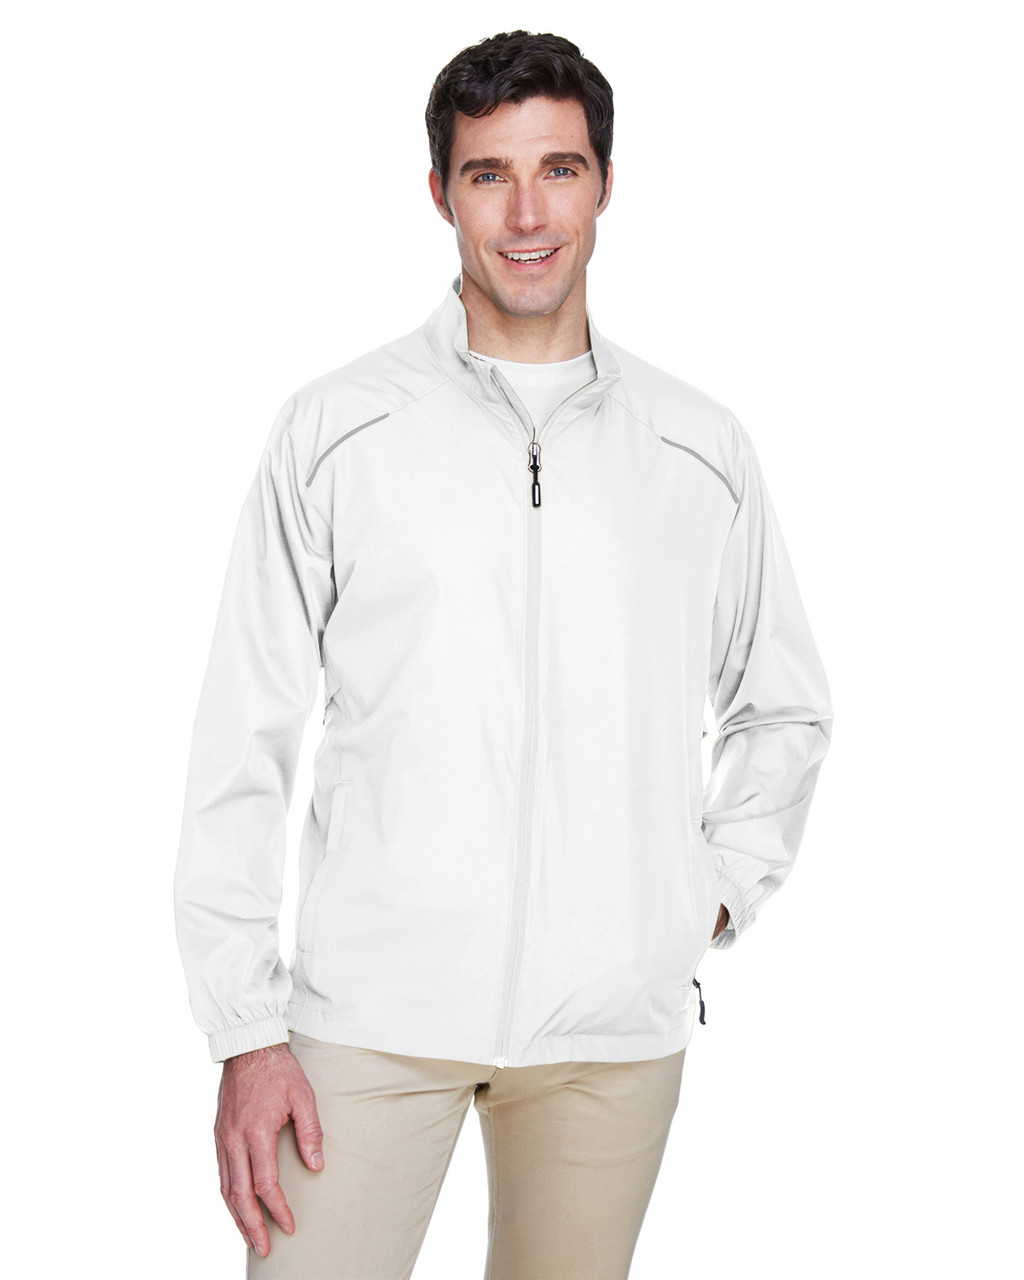 White - 88183 Ash City - Core 365 Motivate Unlined Lightweight Jacket | Blankclothing.ca